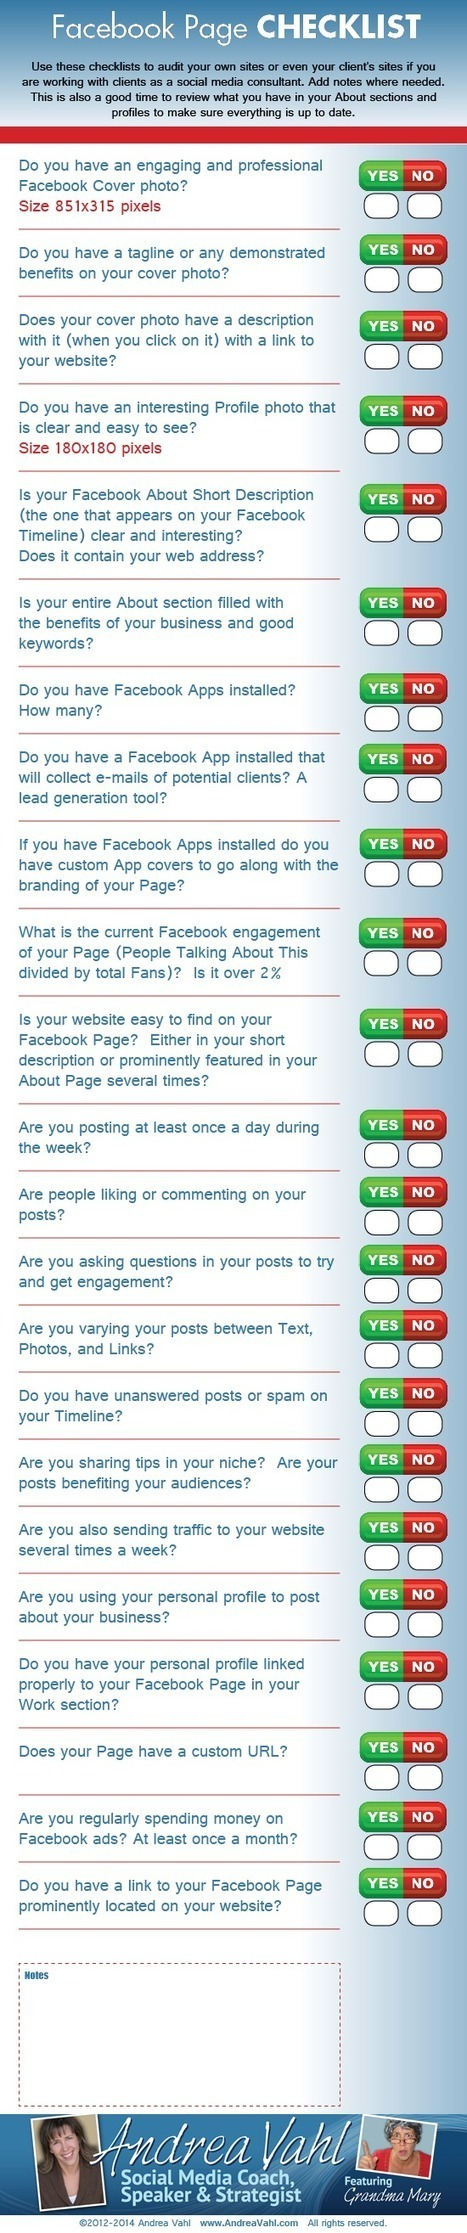 Facebook Page Checklist [Infographic] | Small Business Marketing Magic | Scoop.it